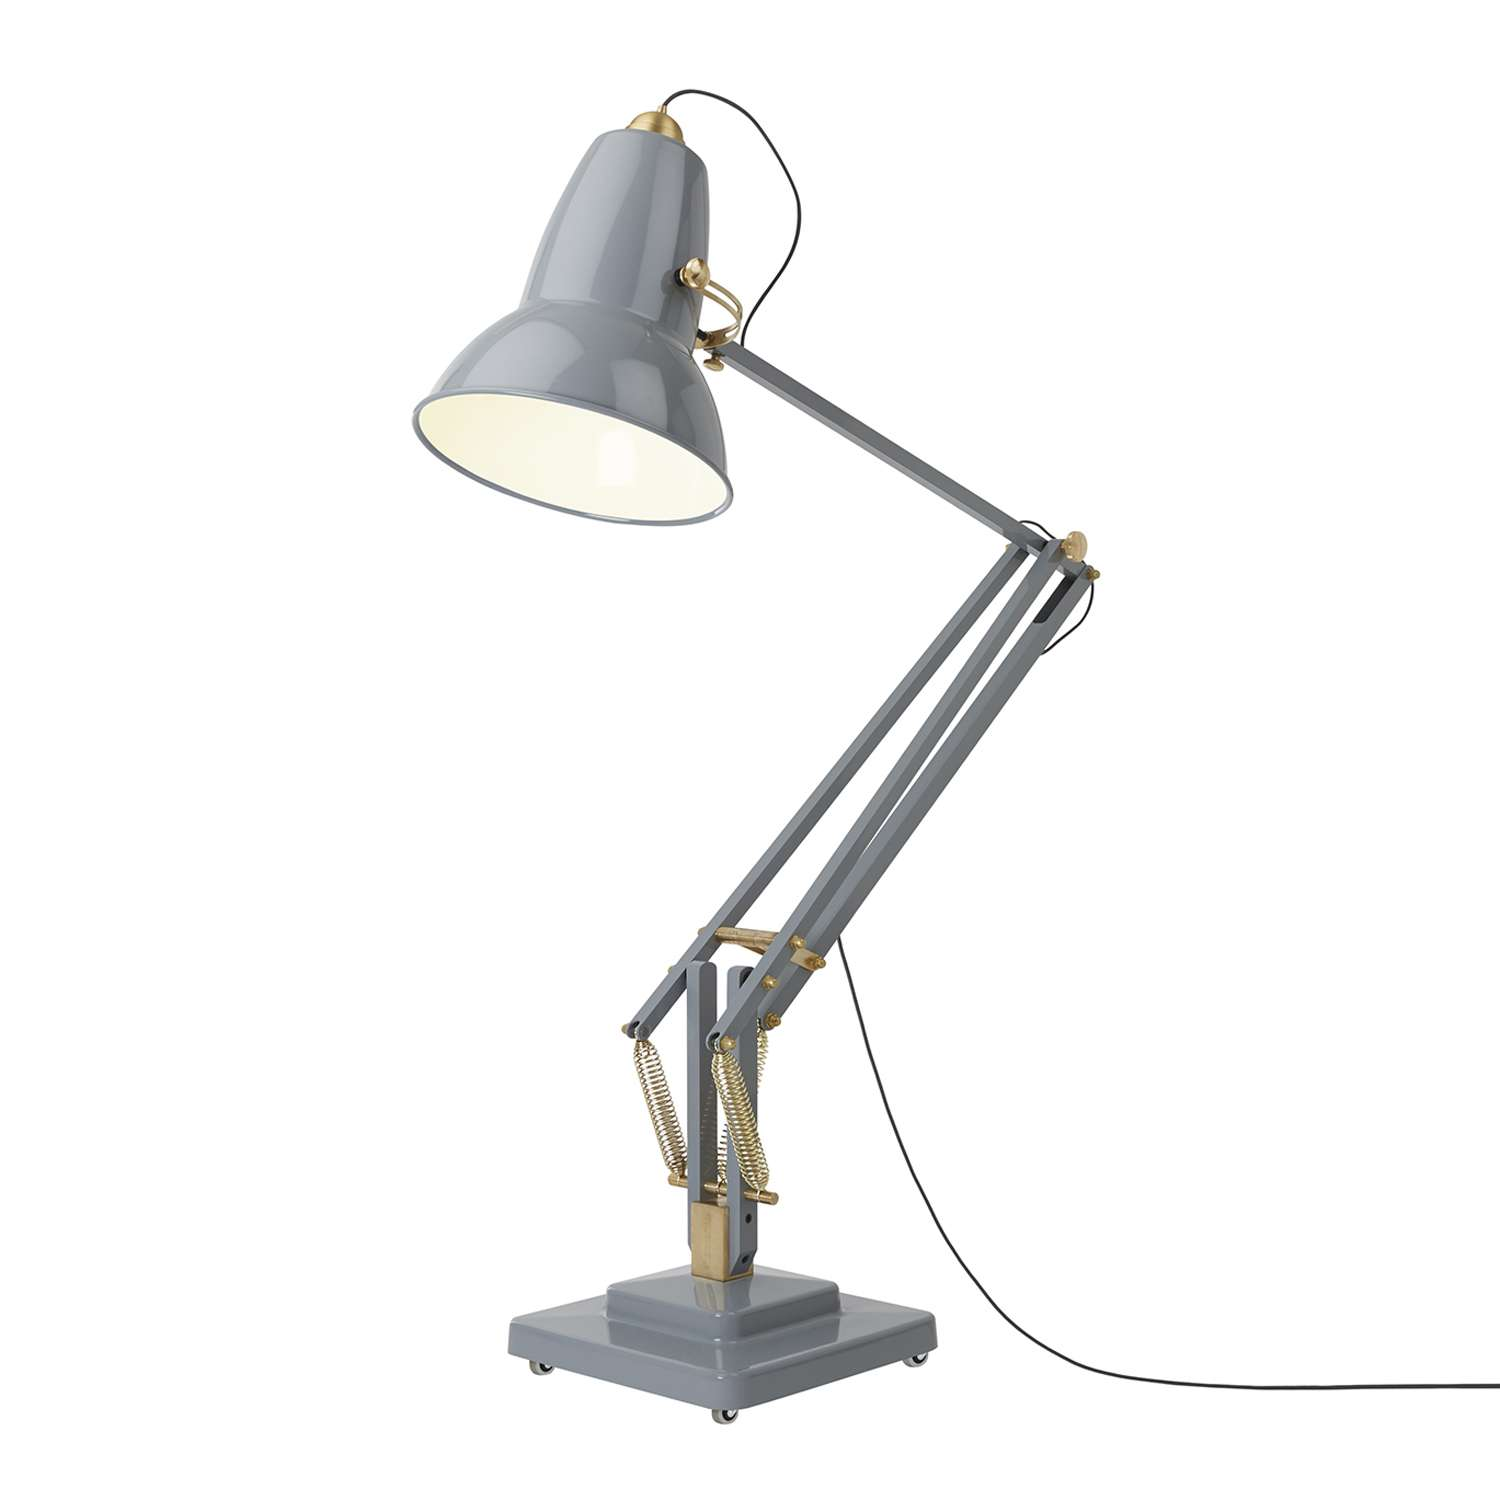 1500x1500 Original 1227 Giant Brass Floor Lamp By Anglepoise Ylighting